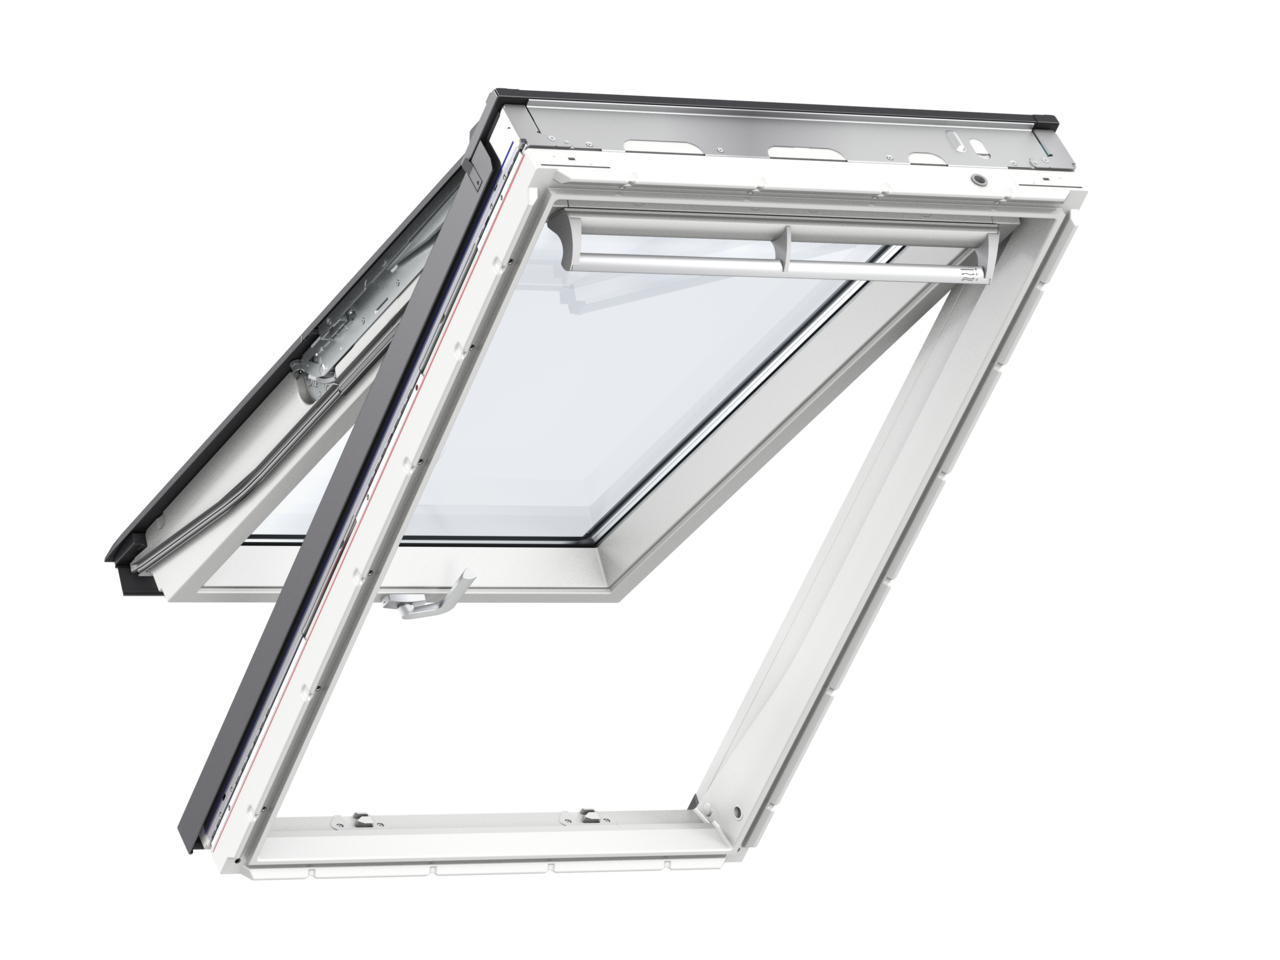 Velux GPU FK06 660 x 1180mm Top Hung Standard 70Pane Roof Window - White Polyurethane